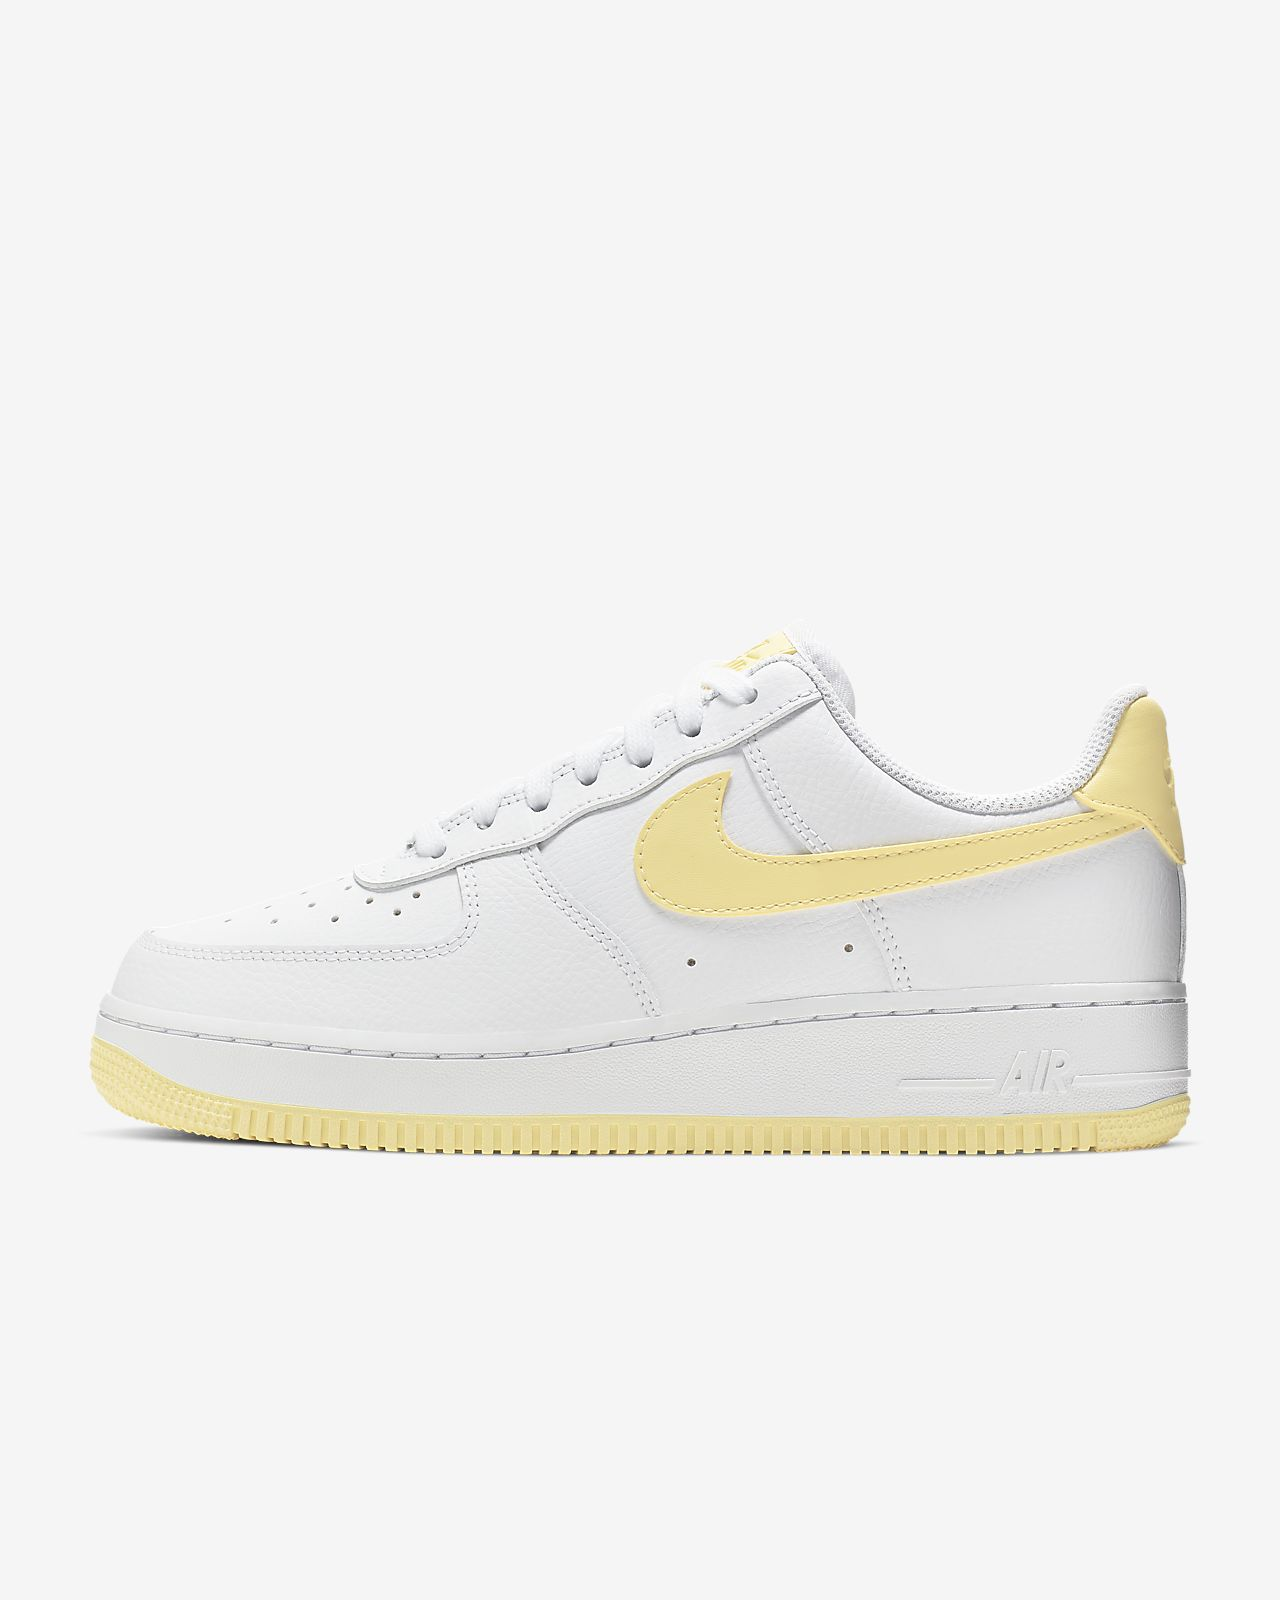 671b2d2020 Nike Air Force 1 '07 Patent Women's Shoe